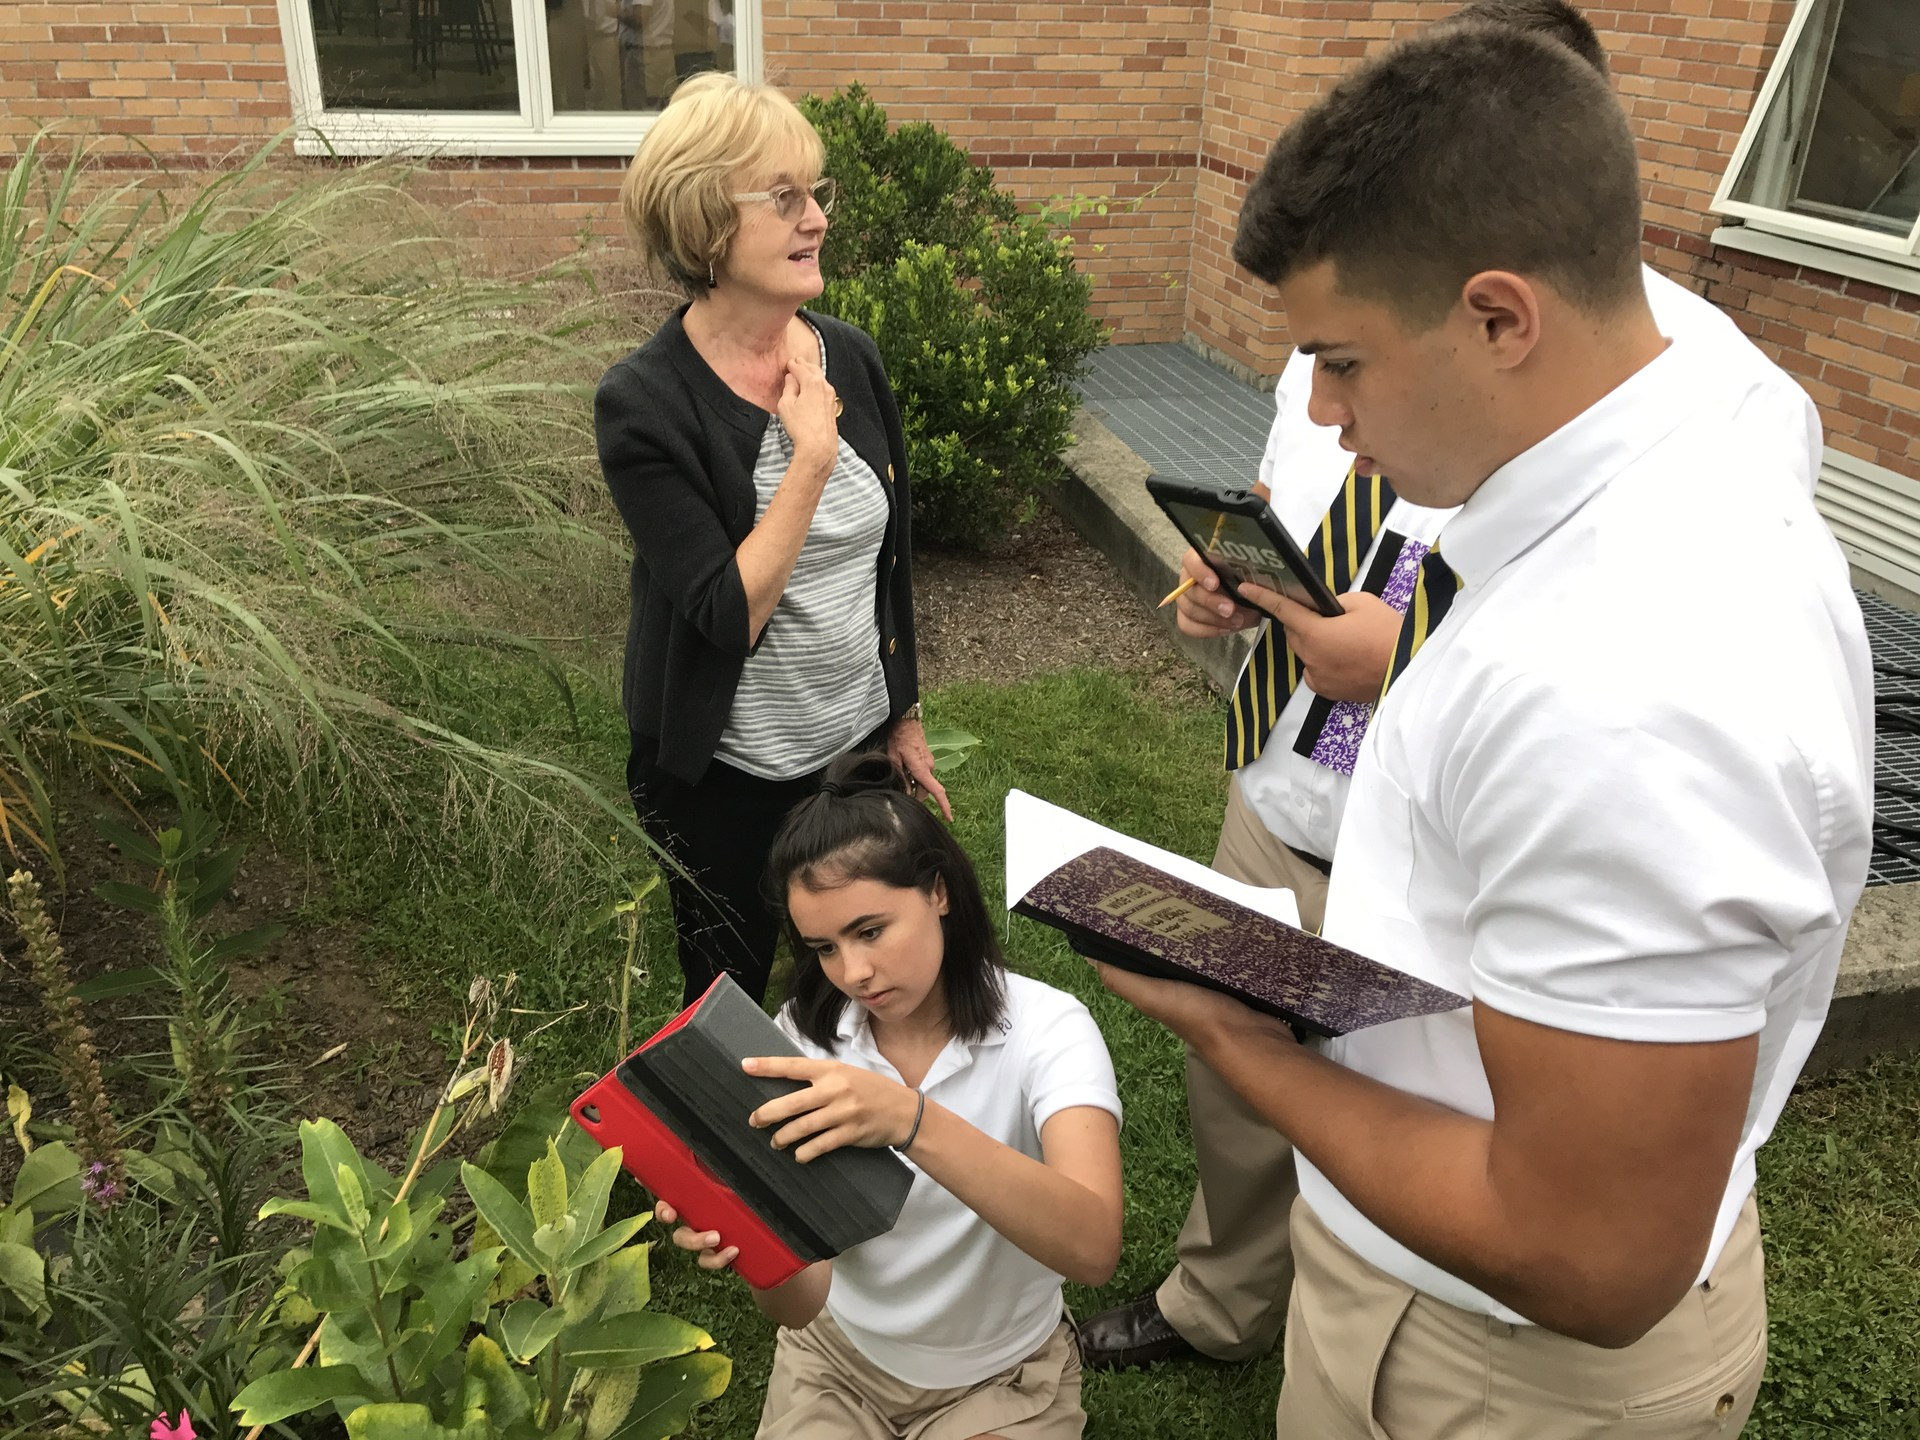 Students examining monarch butterflies outside